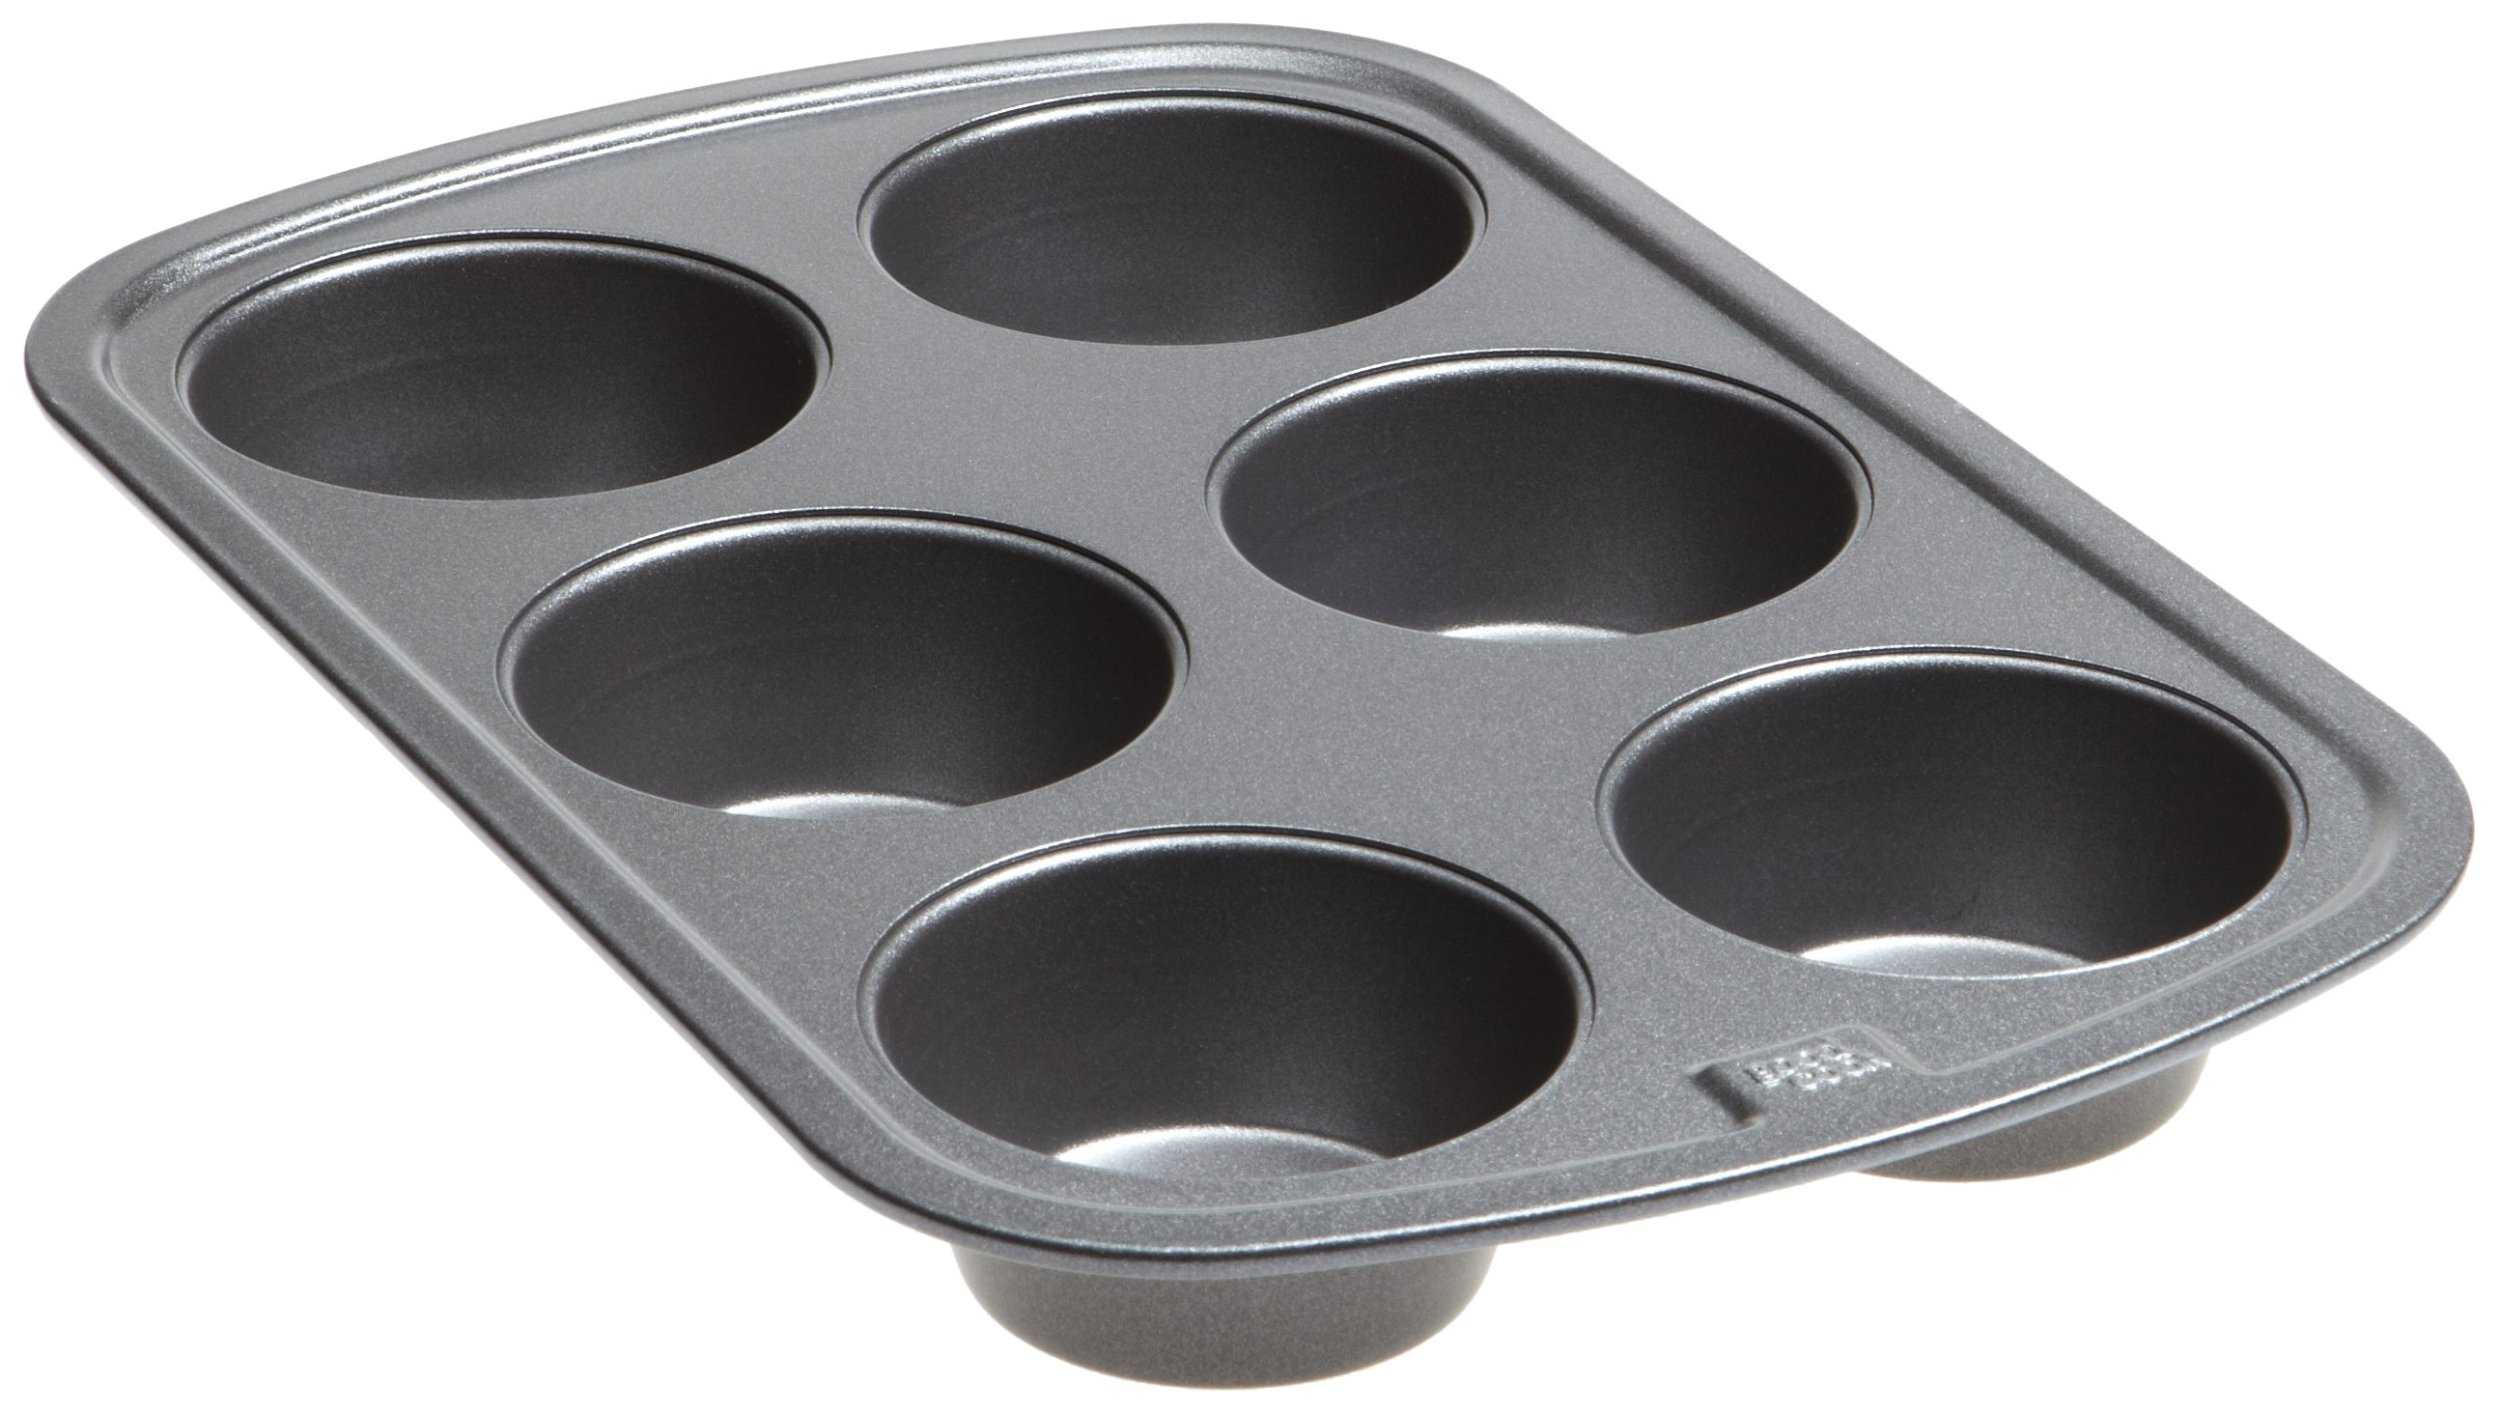 Good Cook 04030 4030 Muffin Pan 2-3/4 in Dia x 14-1/2 in L x 8-1/2 in W x 6.8 in H by Good Cook (Image #1)